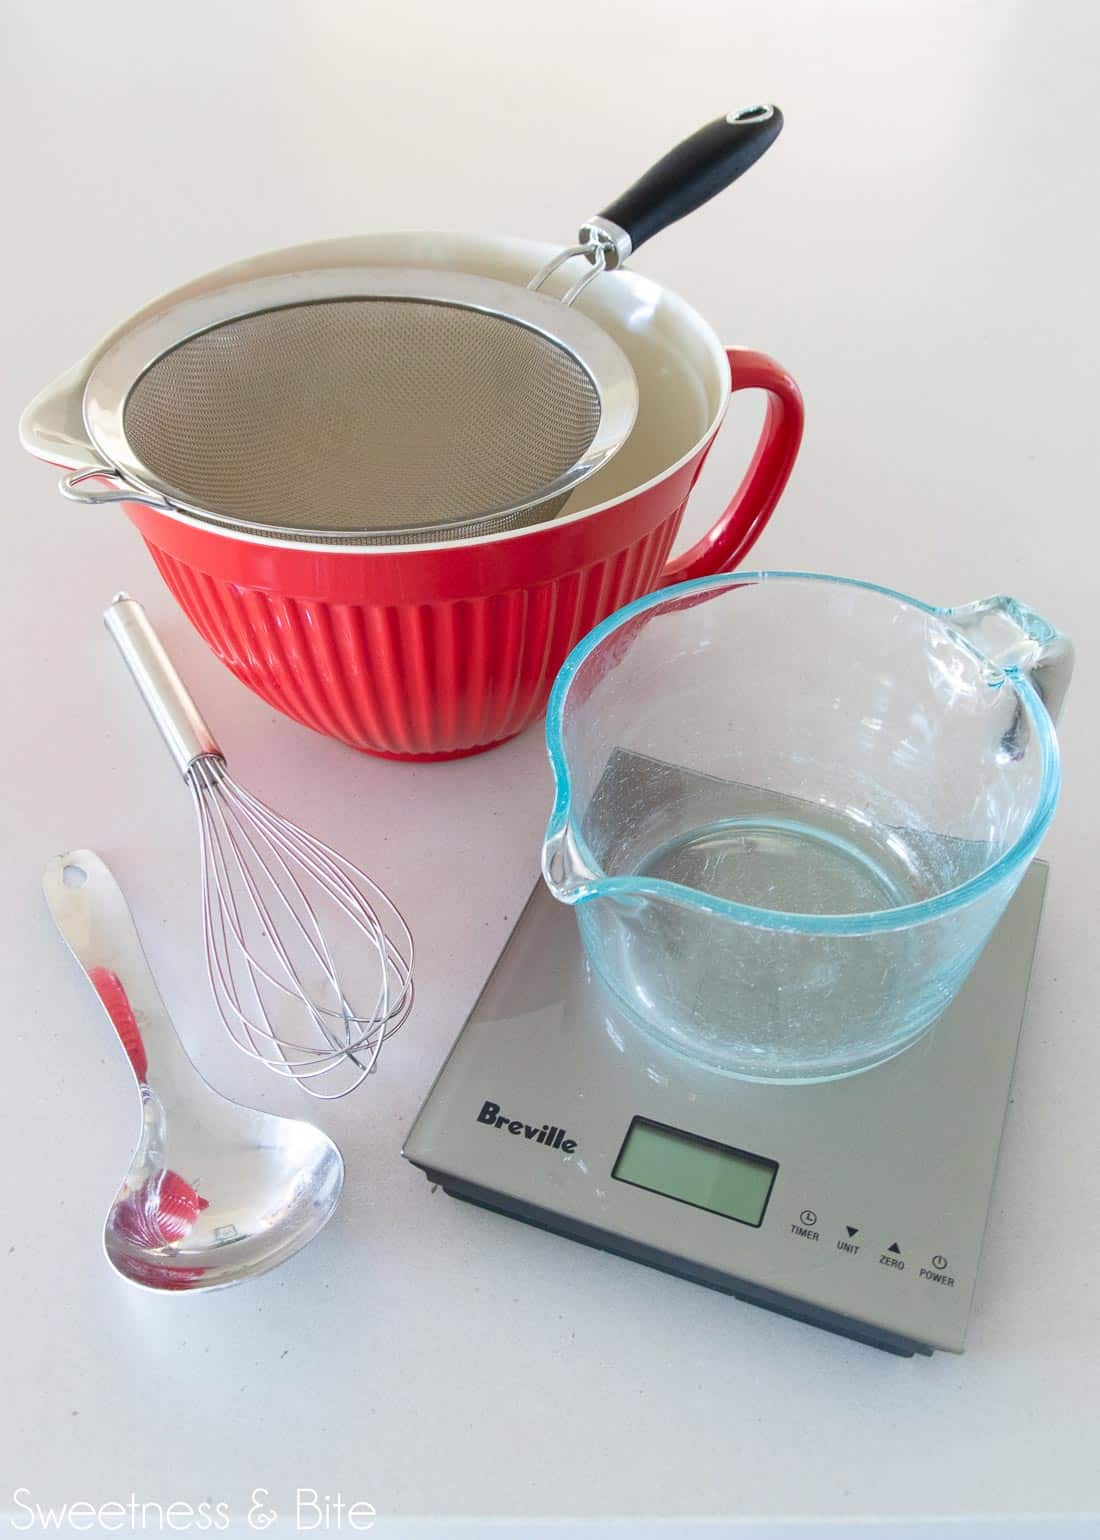 Tools for mixing up the flour blend - bowls, sieve, spoon, whisk and kitchen scales.